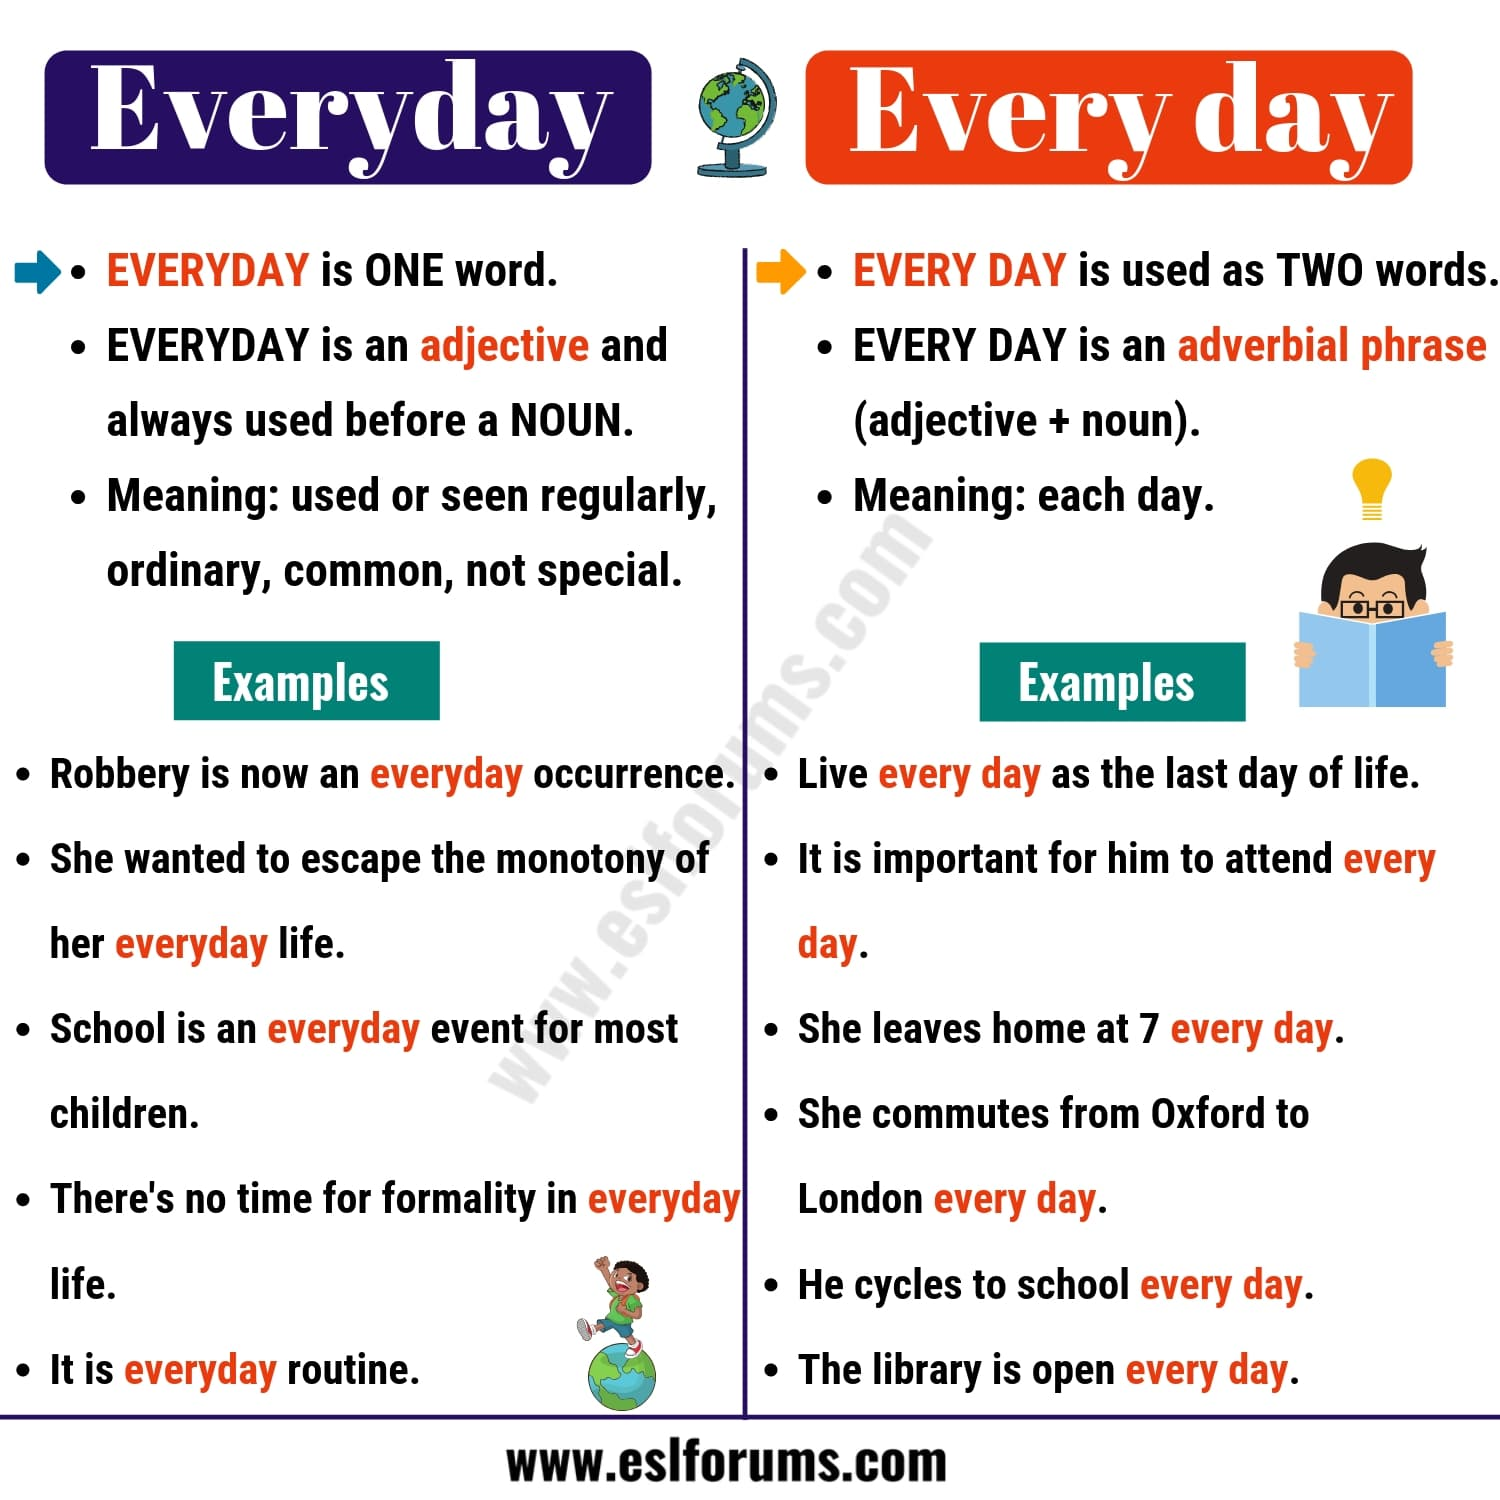 EVERYDAY vs EVERY DAY: How to Use Every day vs Everyday Correctly?